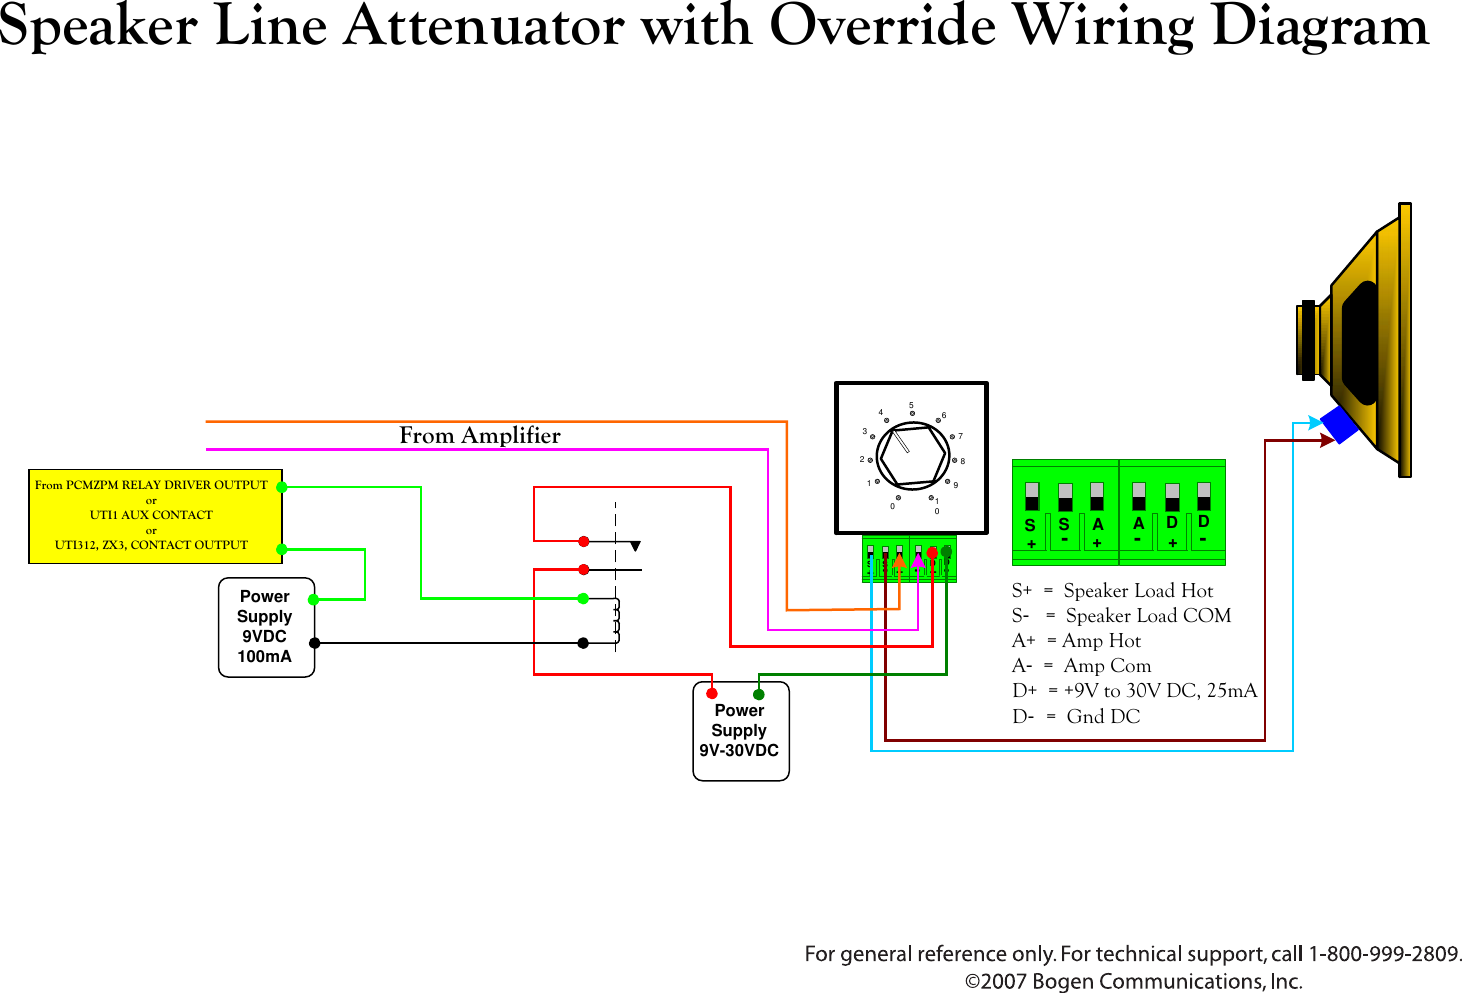 Bogen Speaker Line Attenuator Uti1 Aux Users Manual With Override Wiring  DiagramUserManual.wiki